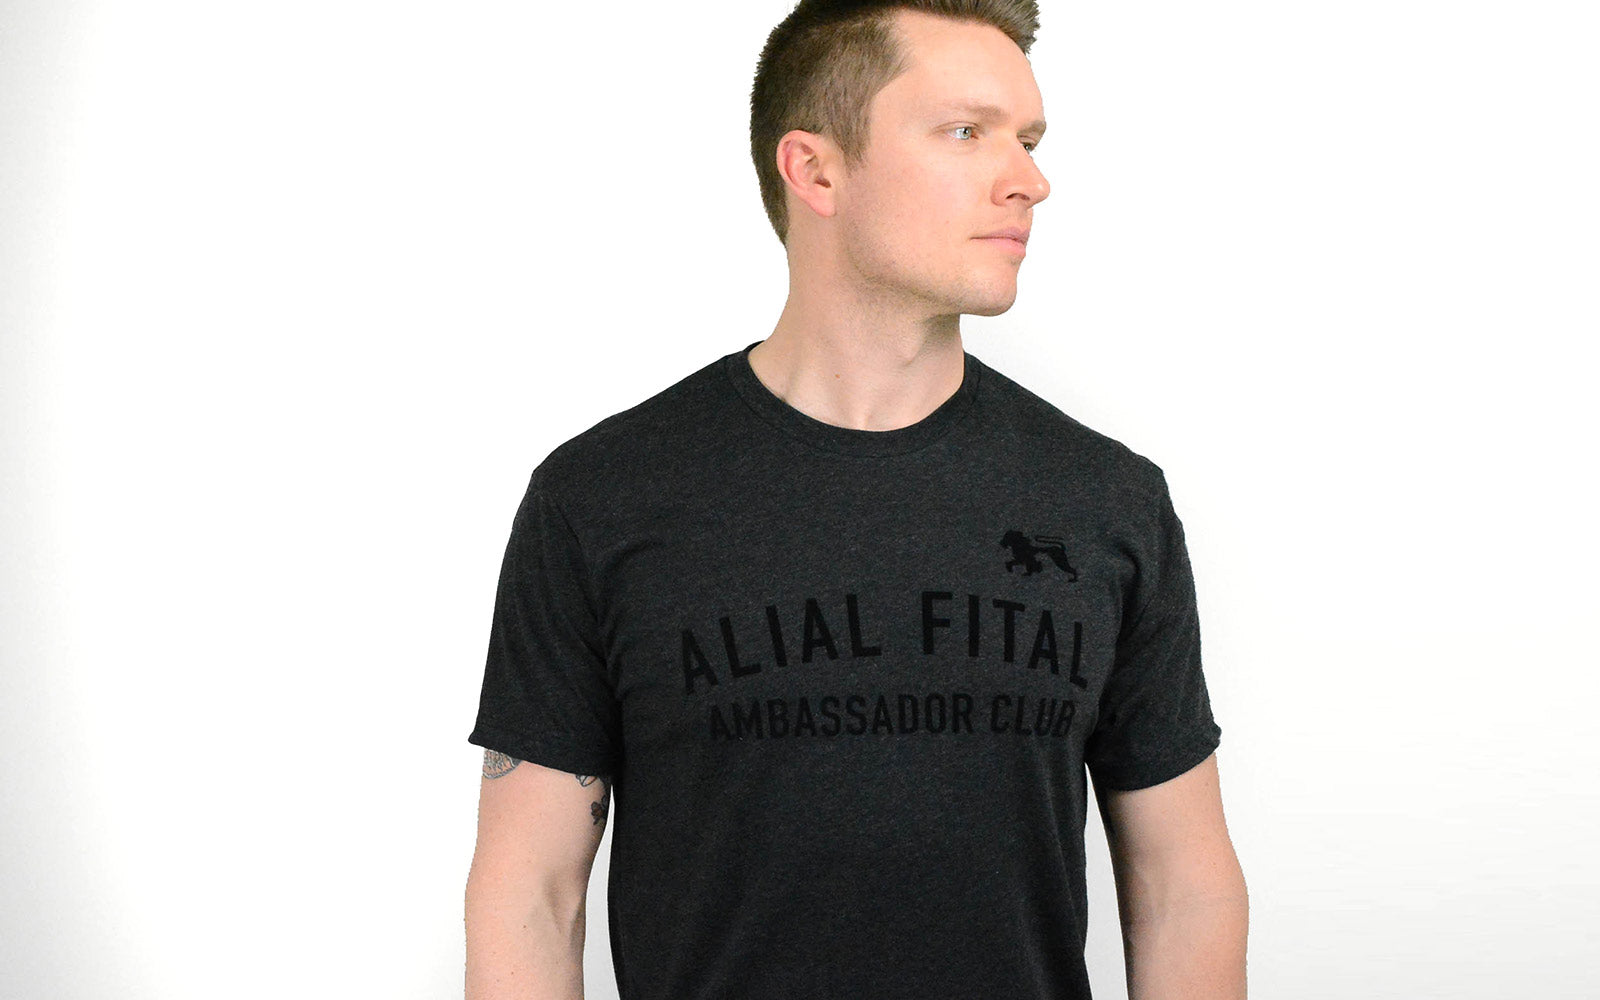 Alial Fital luxury golf wear for men